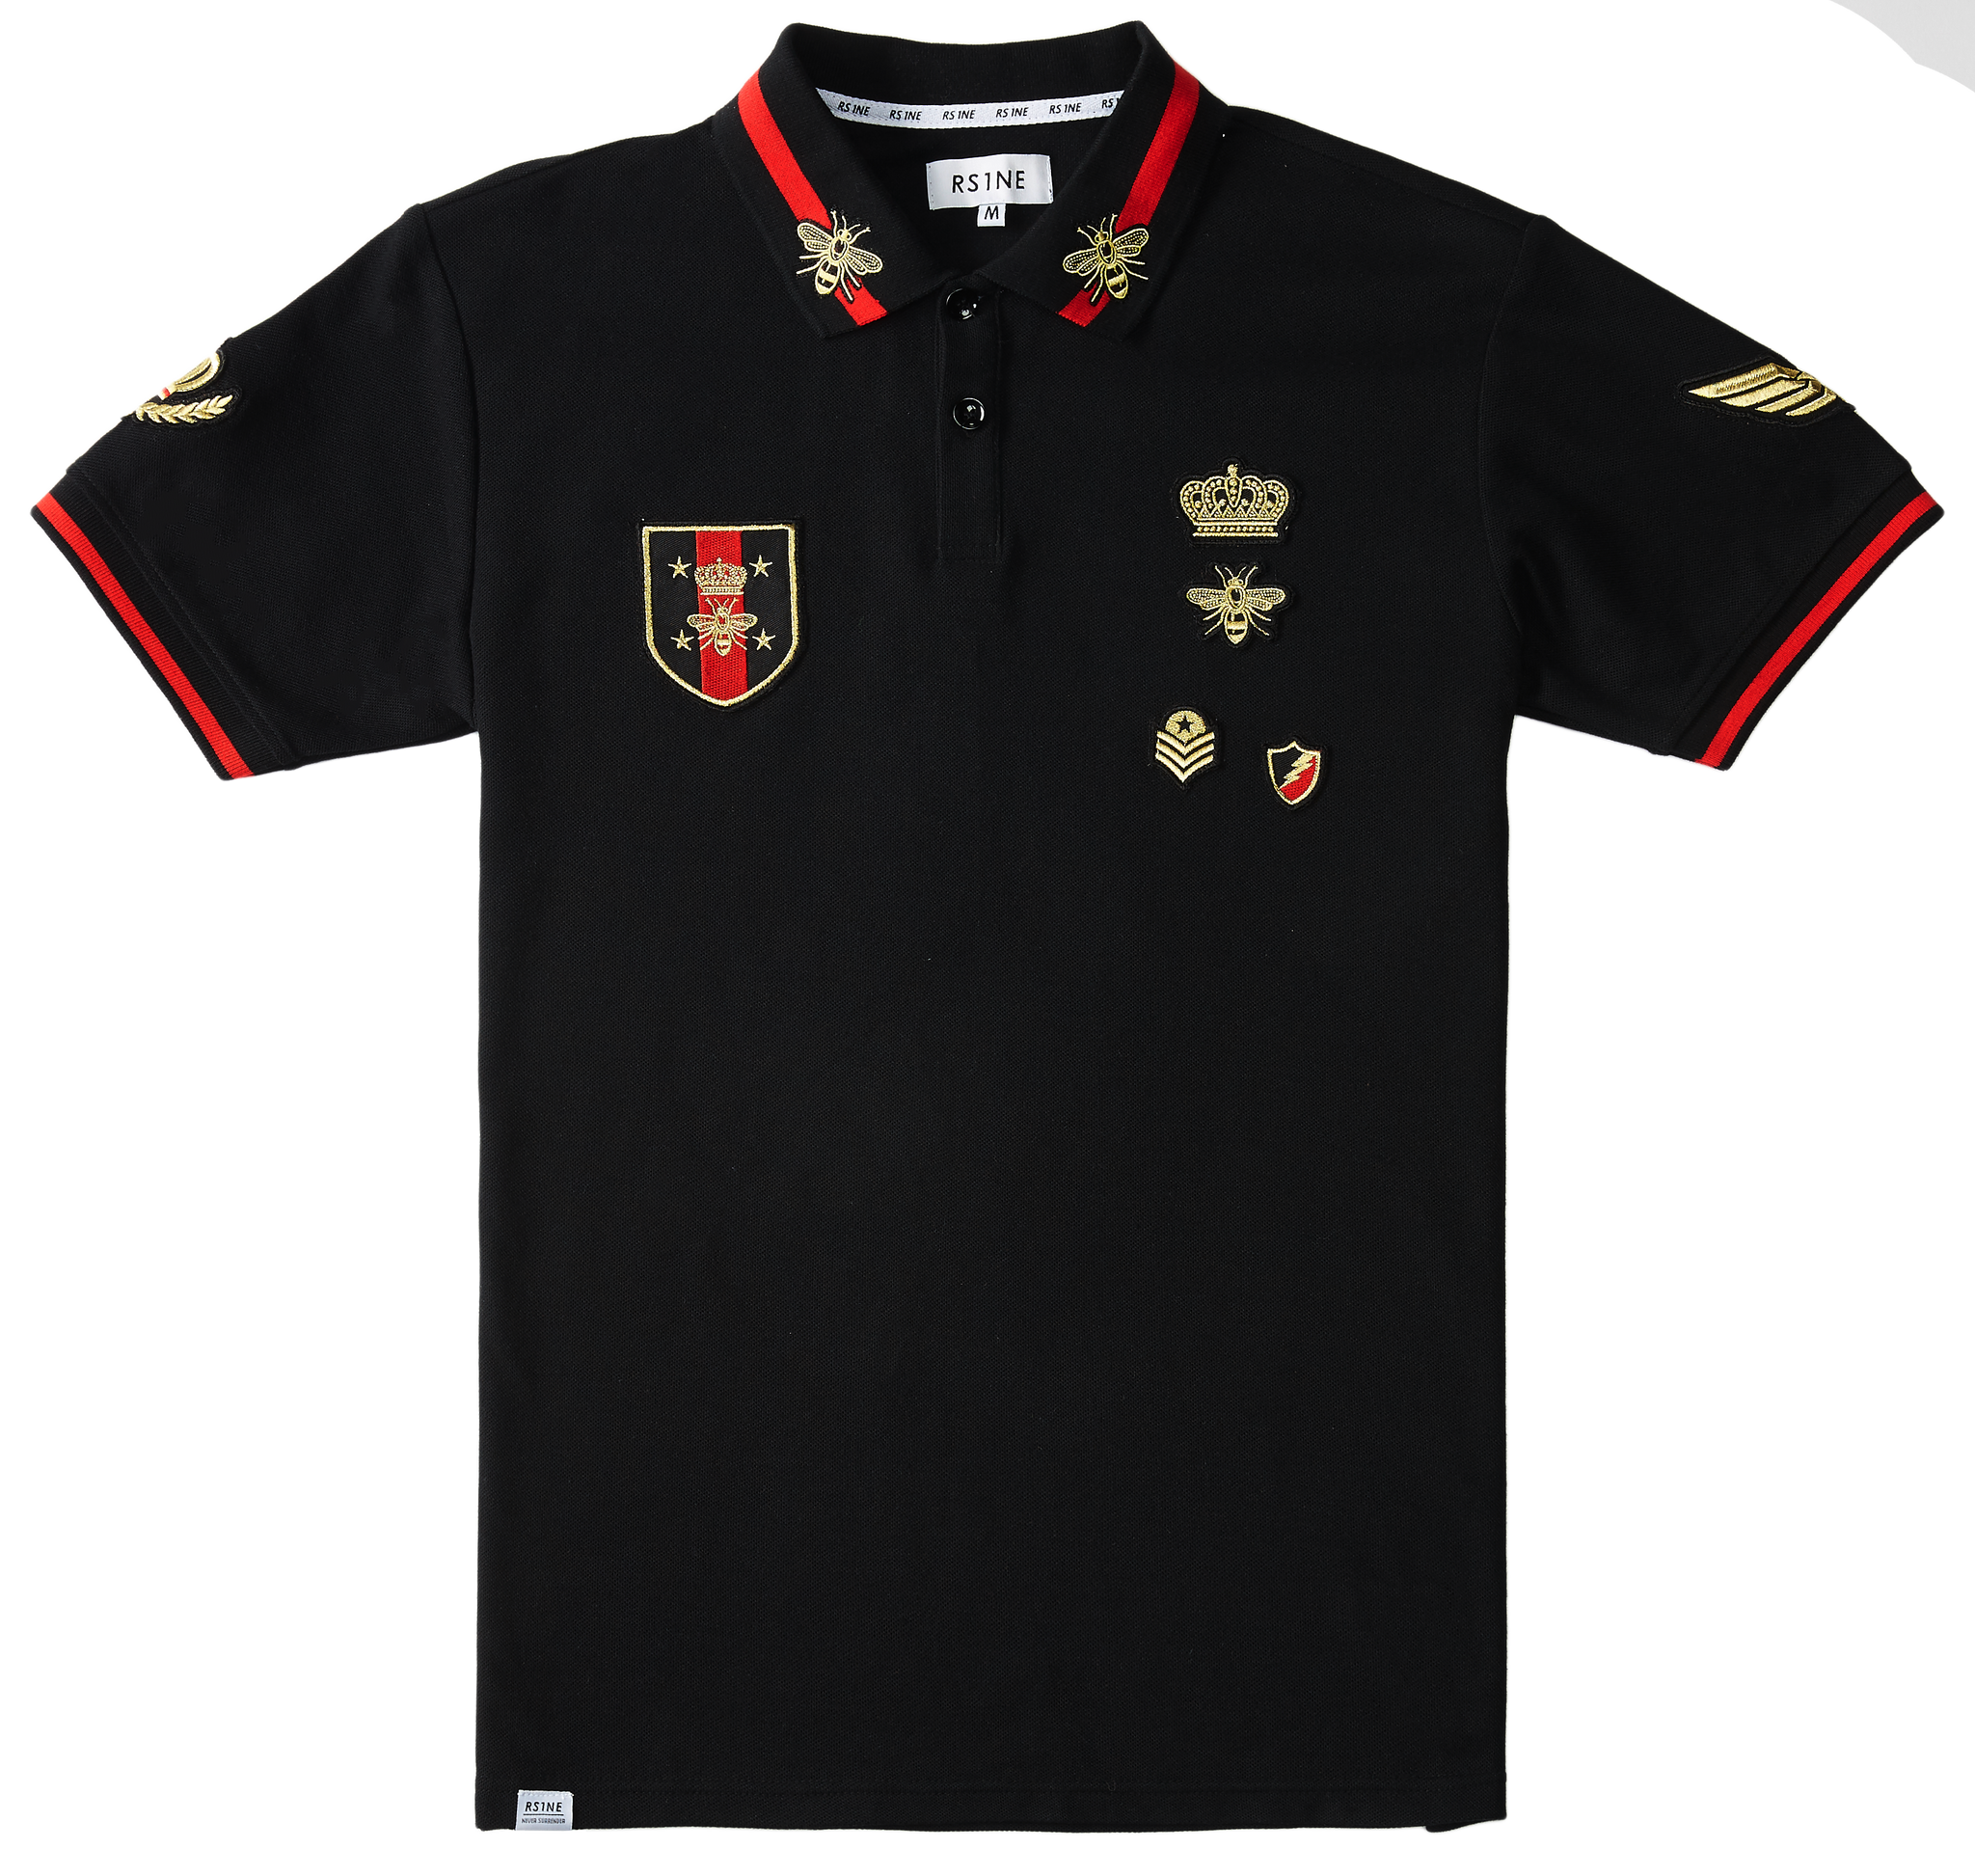 Gold Lurex Patch Polo - RS1NEWYORK